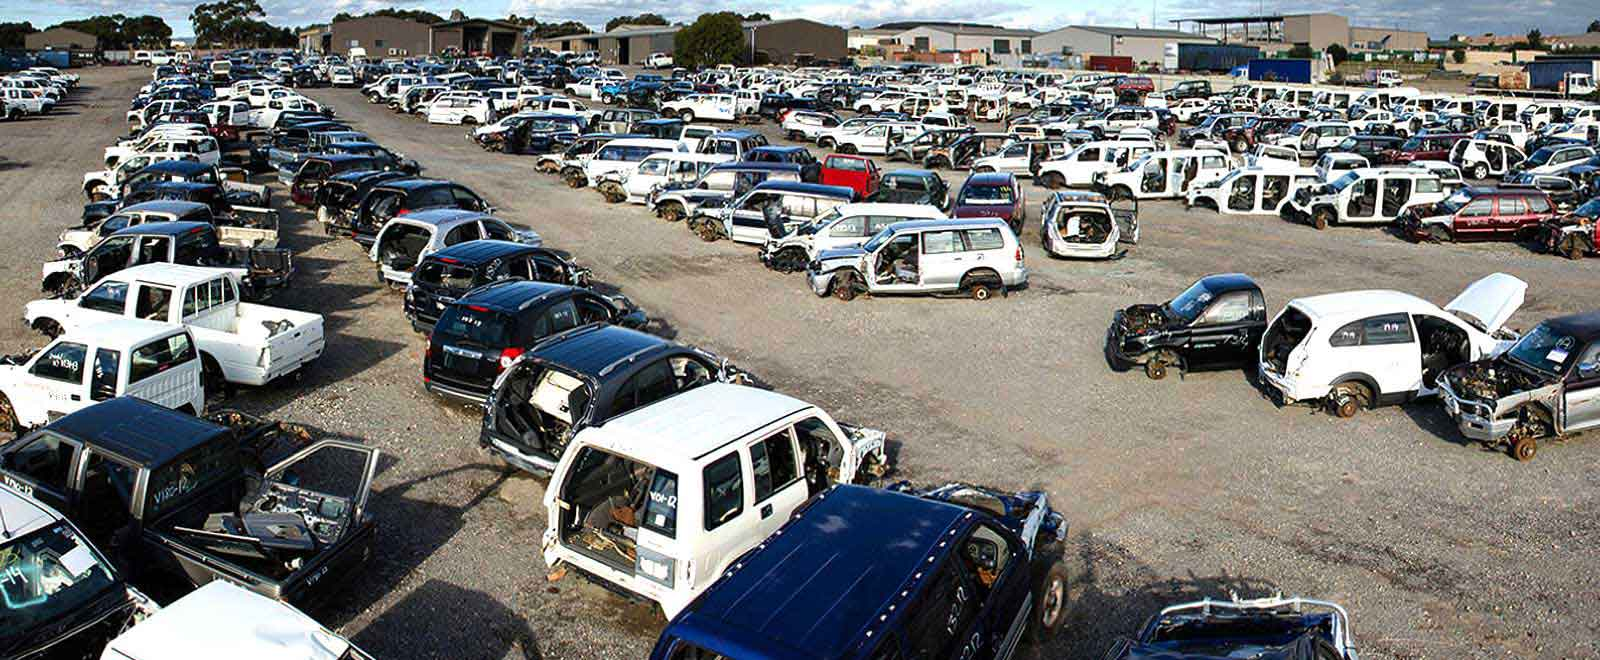 Rows of cars, 4WDs, vans and other vehicles half stipped for parts in wrecking yard.